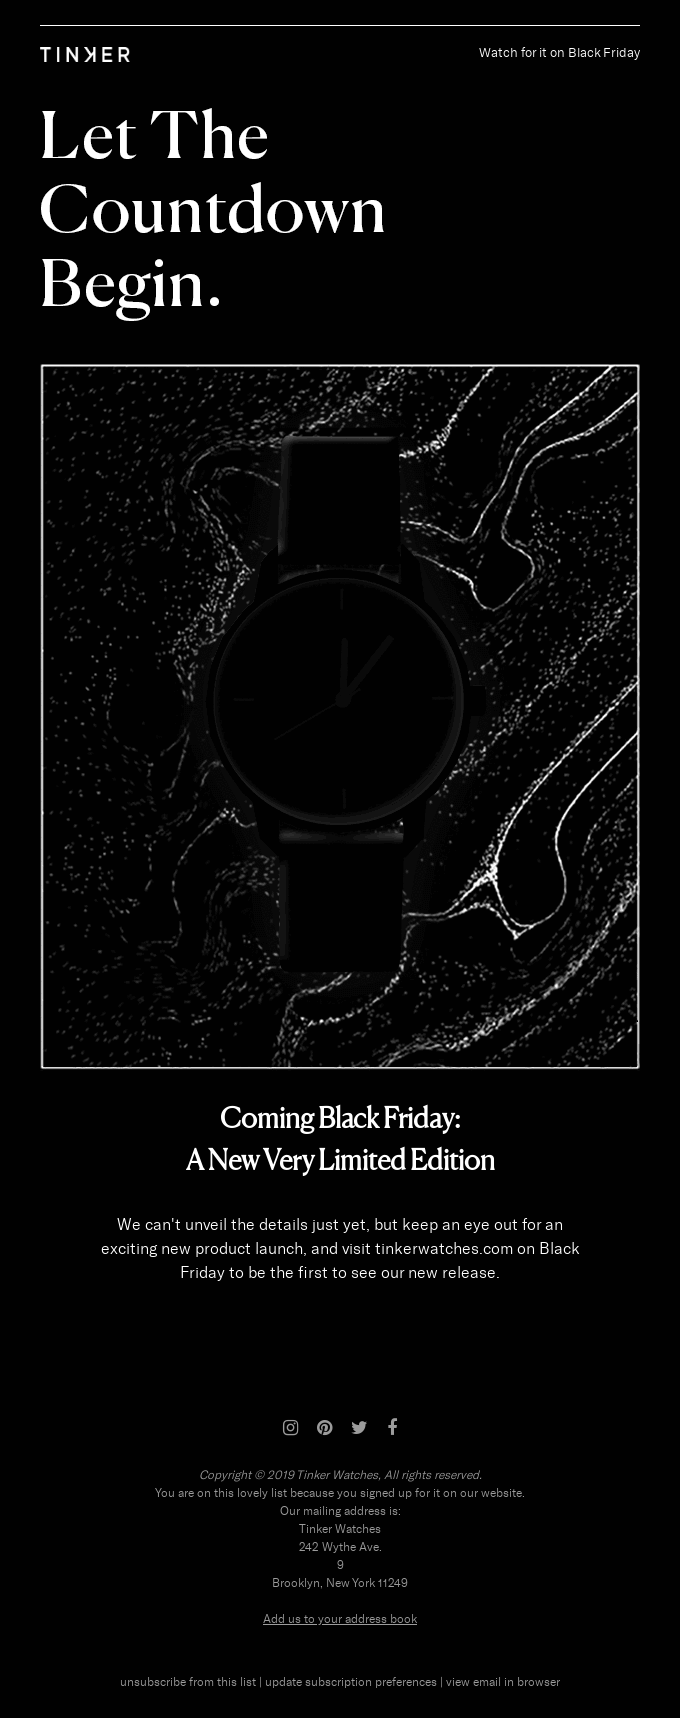 Something New is Coming on Black Friday⌚